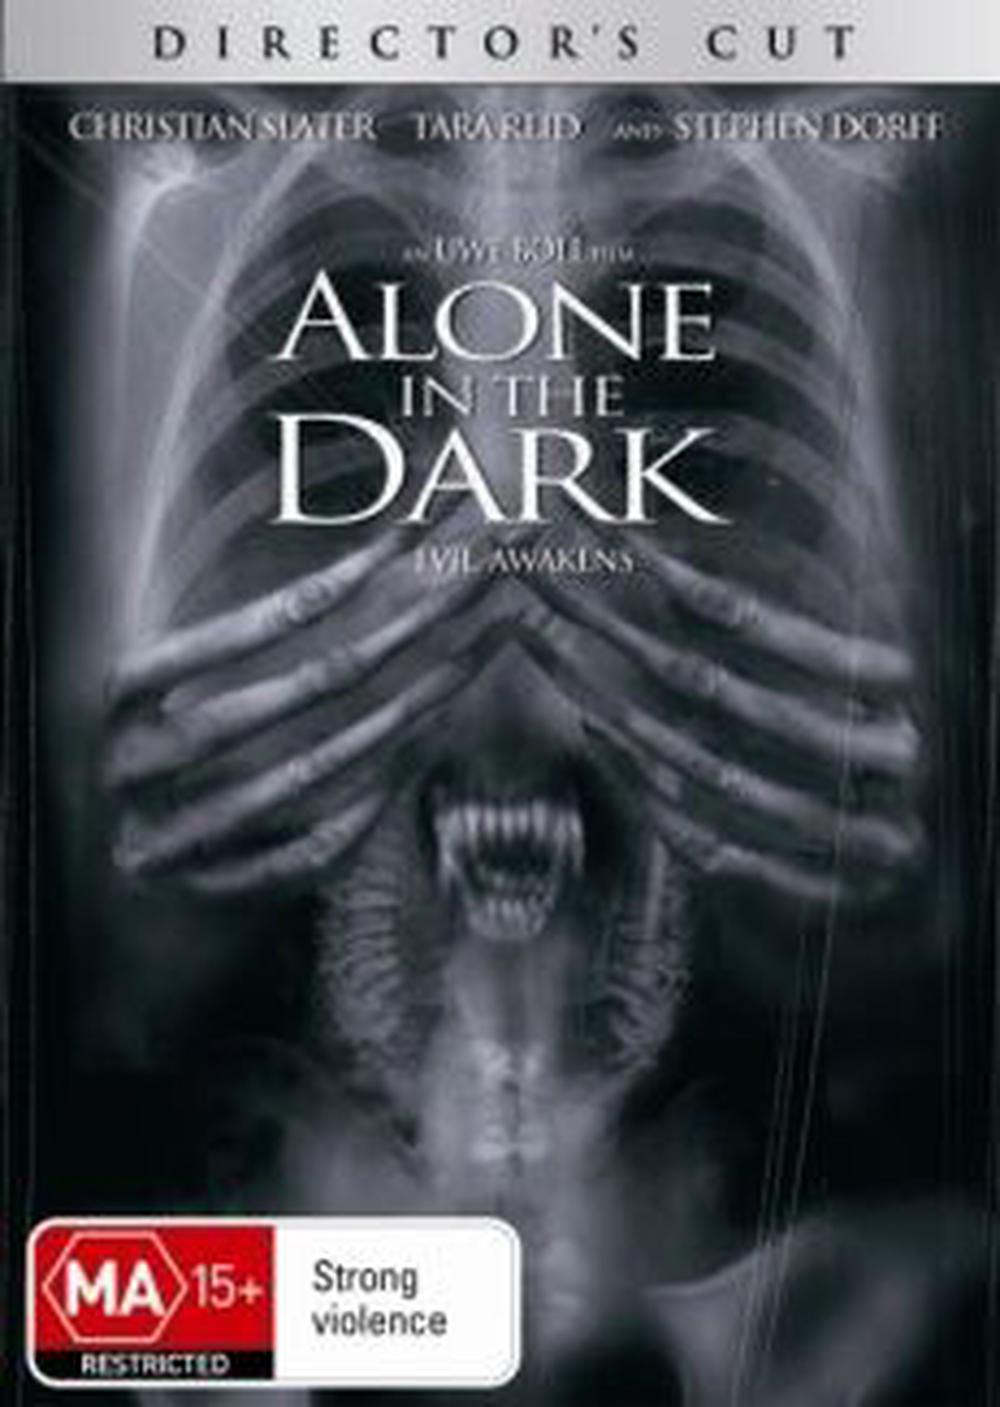 Alone In The Dark 2 Dvd Buy Online At The Nile